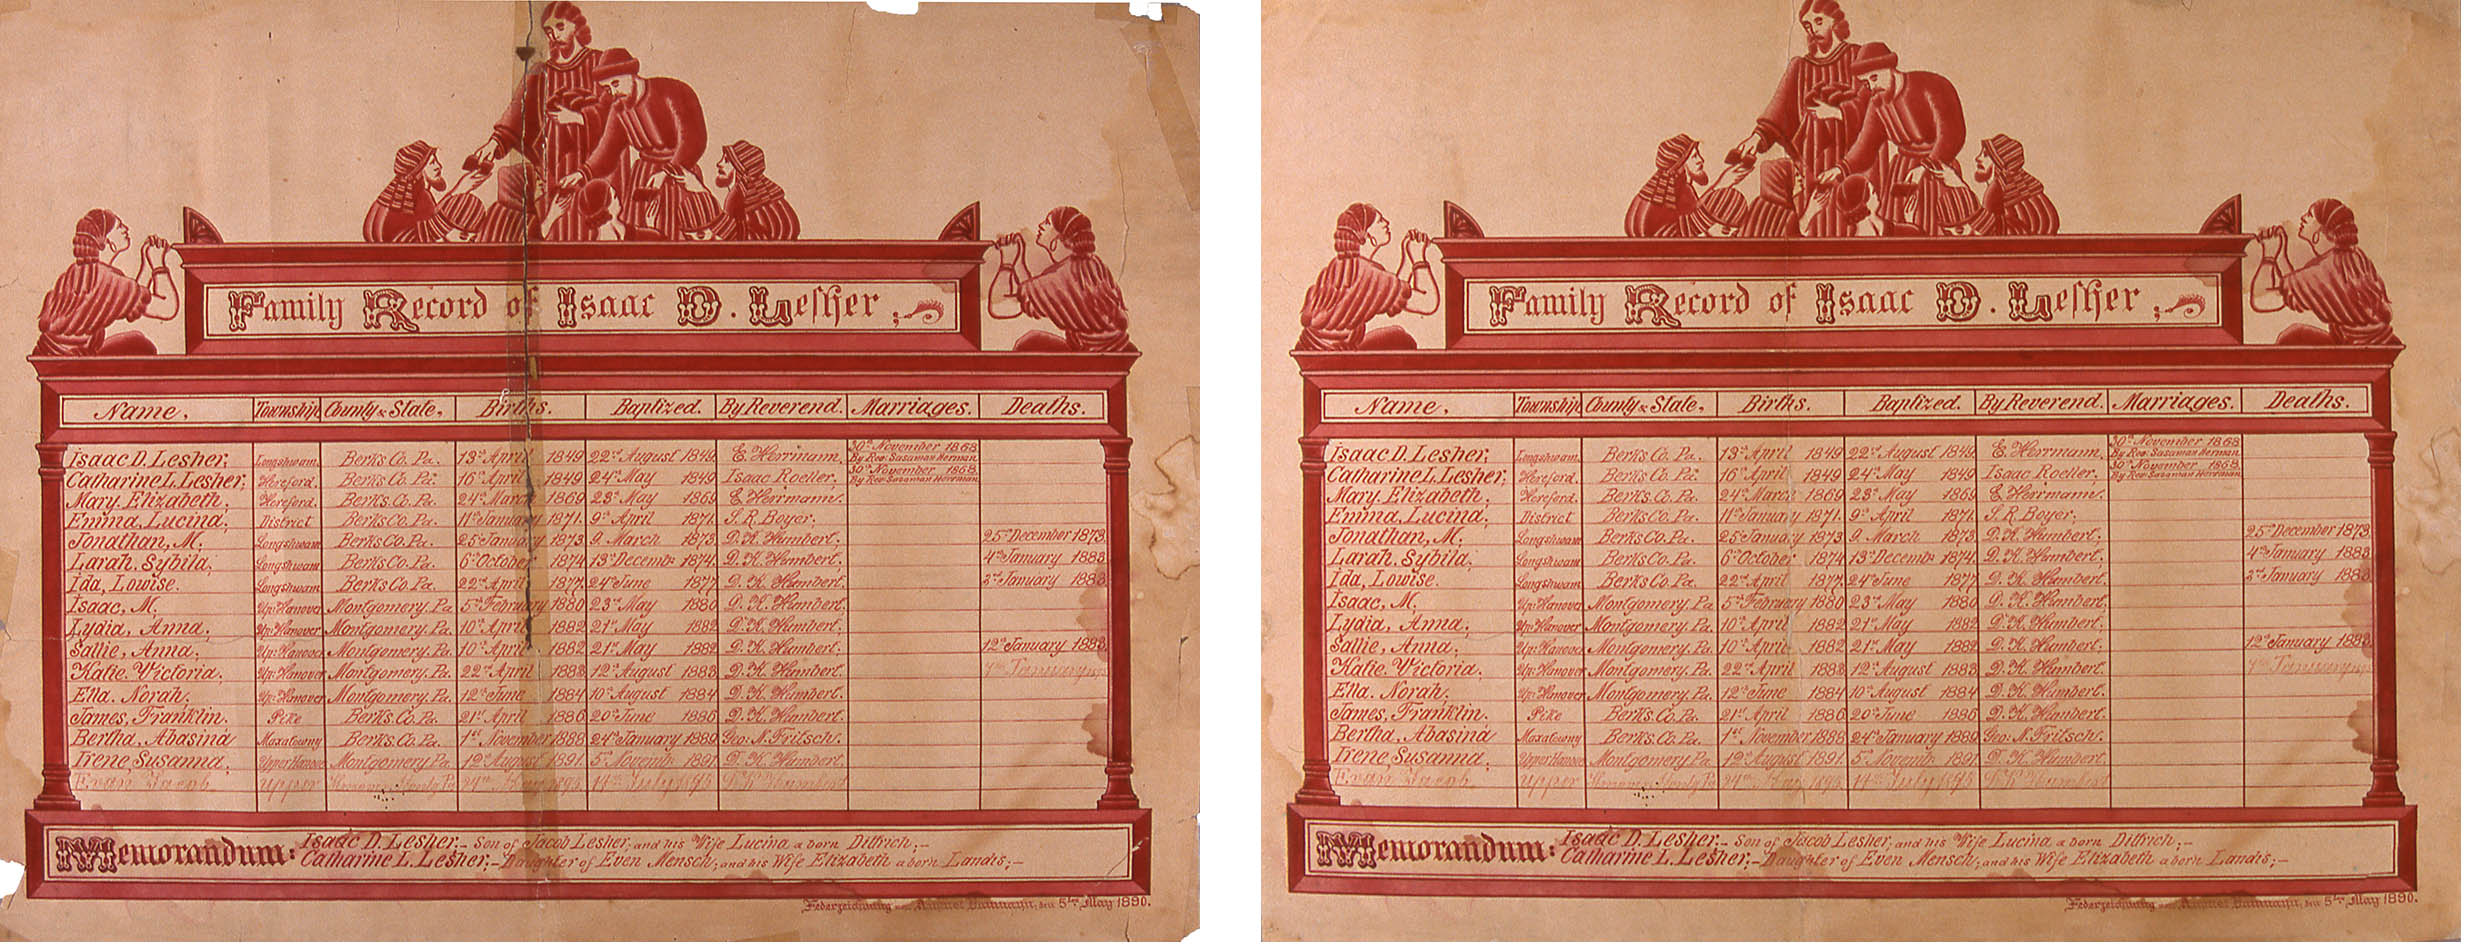 Red inks and watercolor on wove paper, 15{quote} x 18{quote}Before and after treatment--pressure sensitive tapes were removed from the document.  Staining was reduced to the extent possible locally on a suction platen.  The solubility of the inks and watercolors limited the amount of stain reduction.